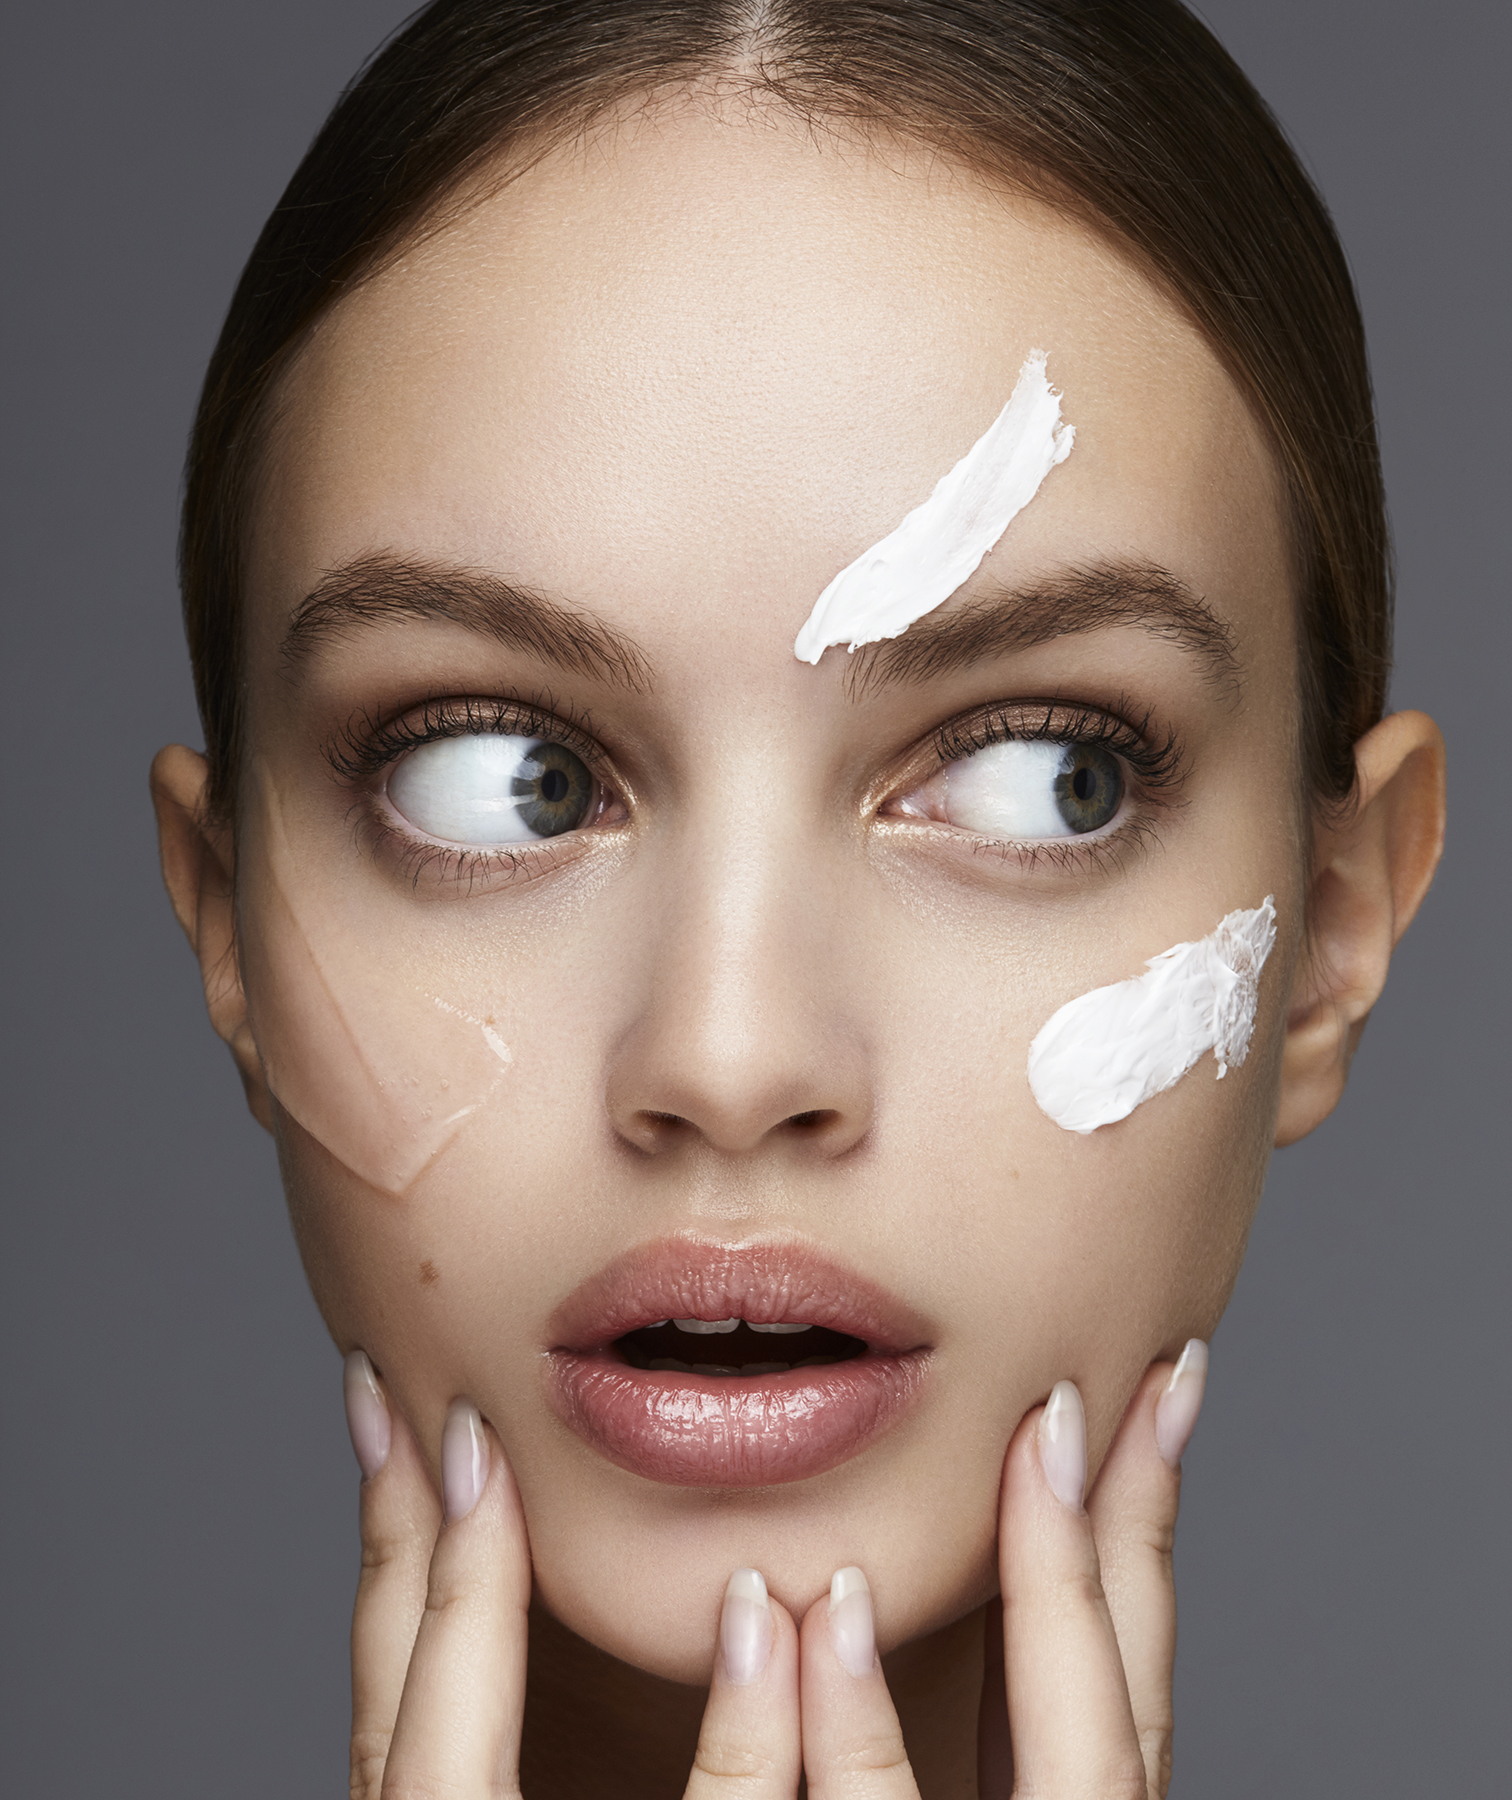 Model with multiple skin products on face